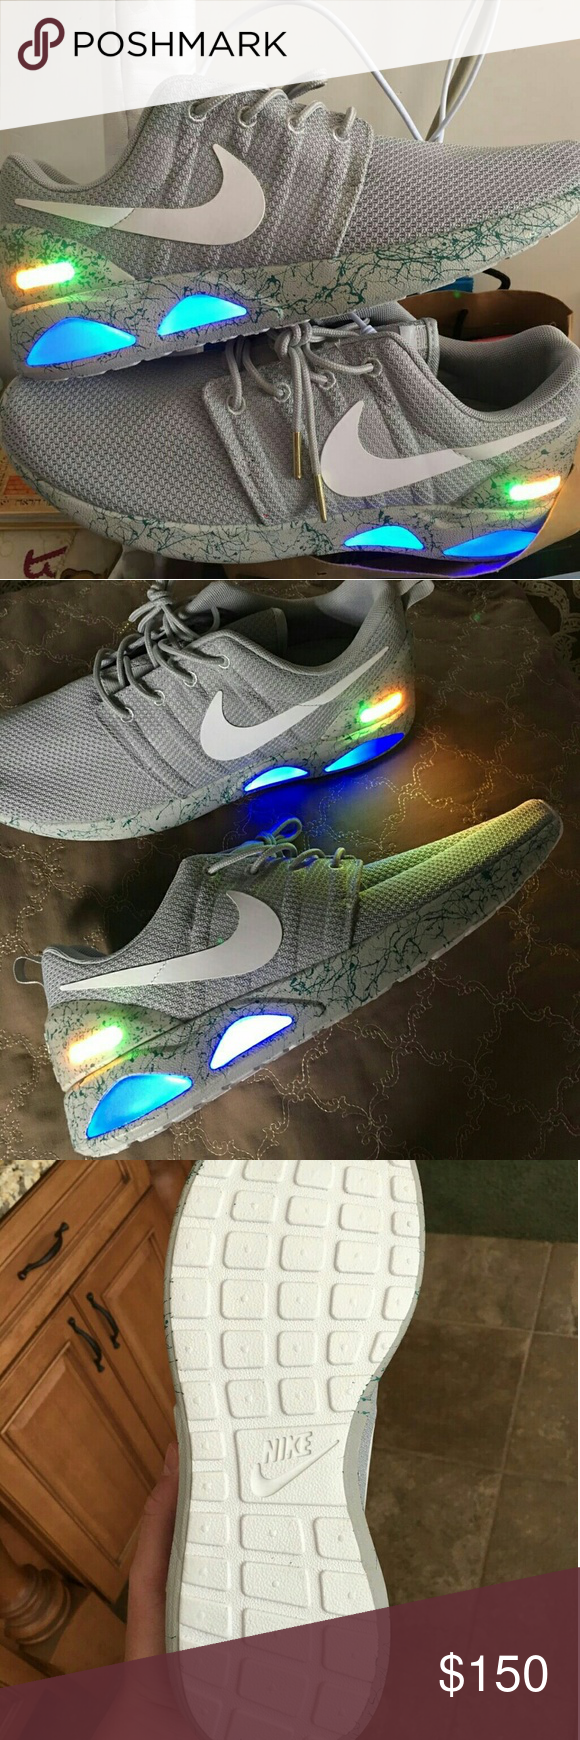 3b3c6eb27fa Nike Roshe x Mag size 10 Nike Roshe x Air Mag Custom best price Nike Shoes  Sneakers